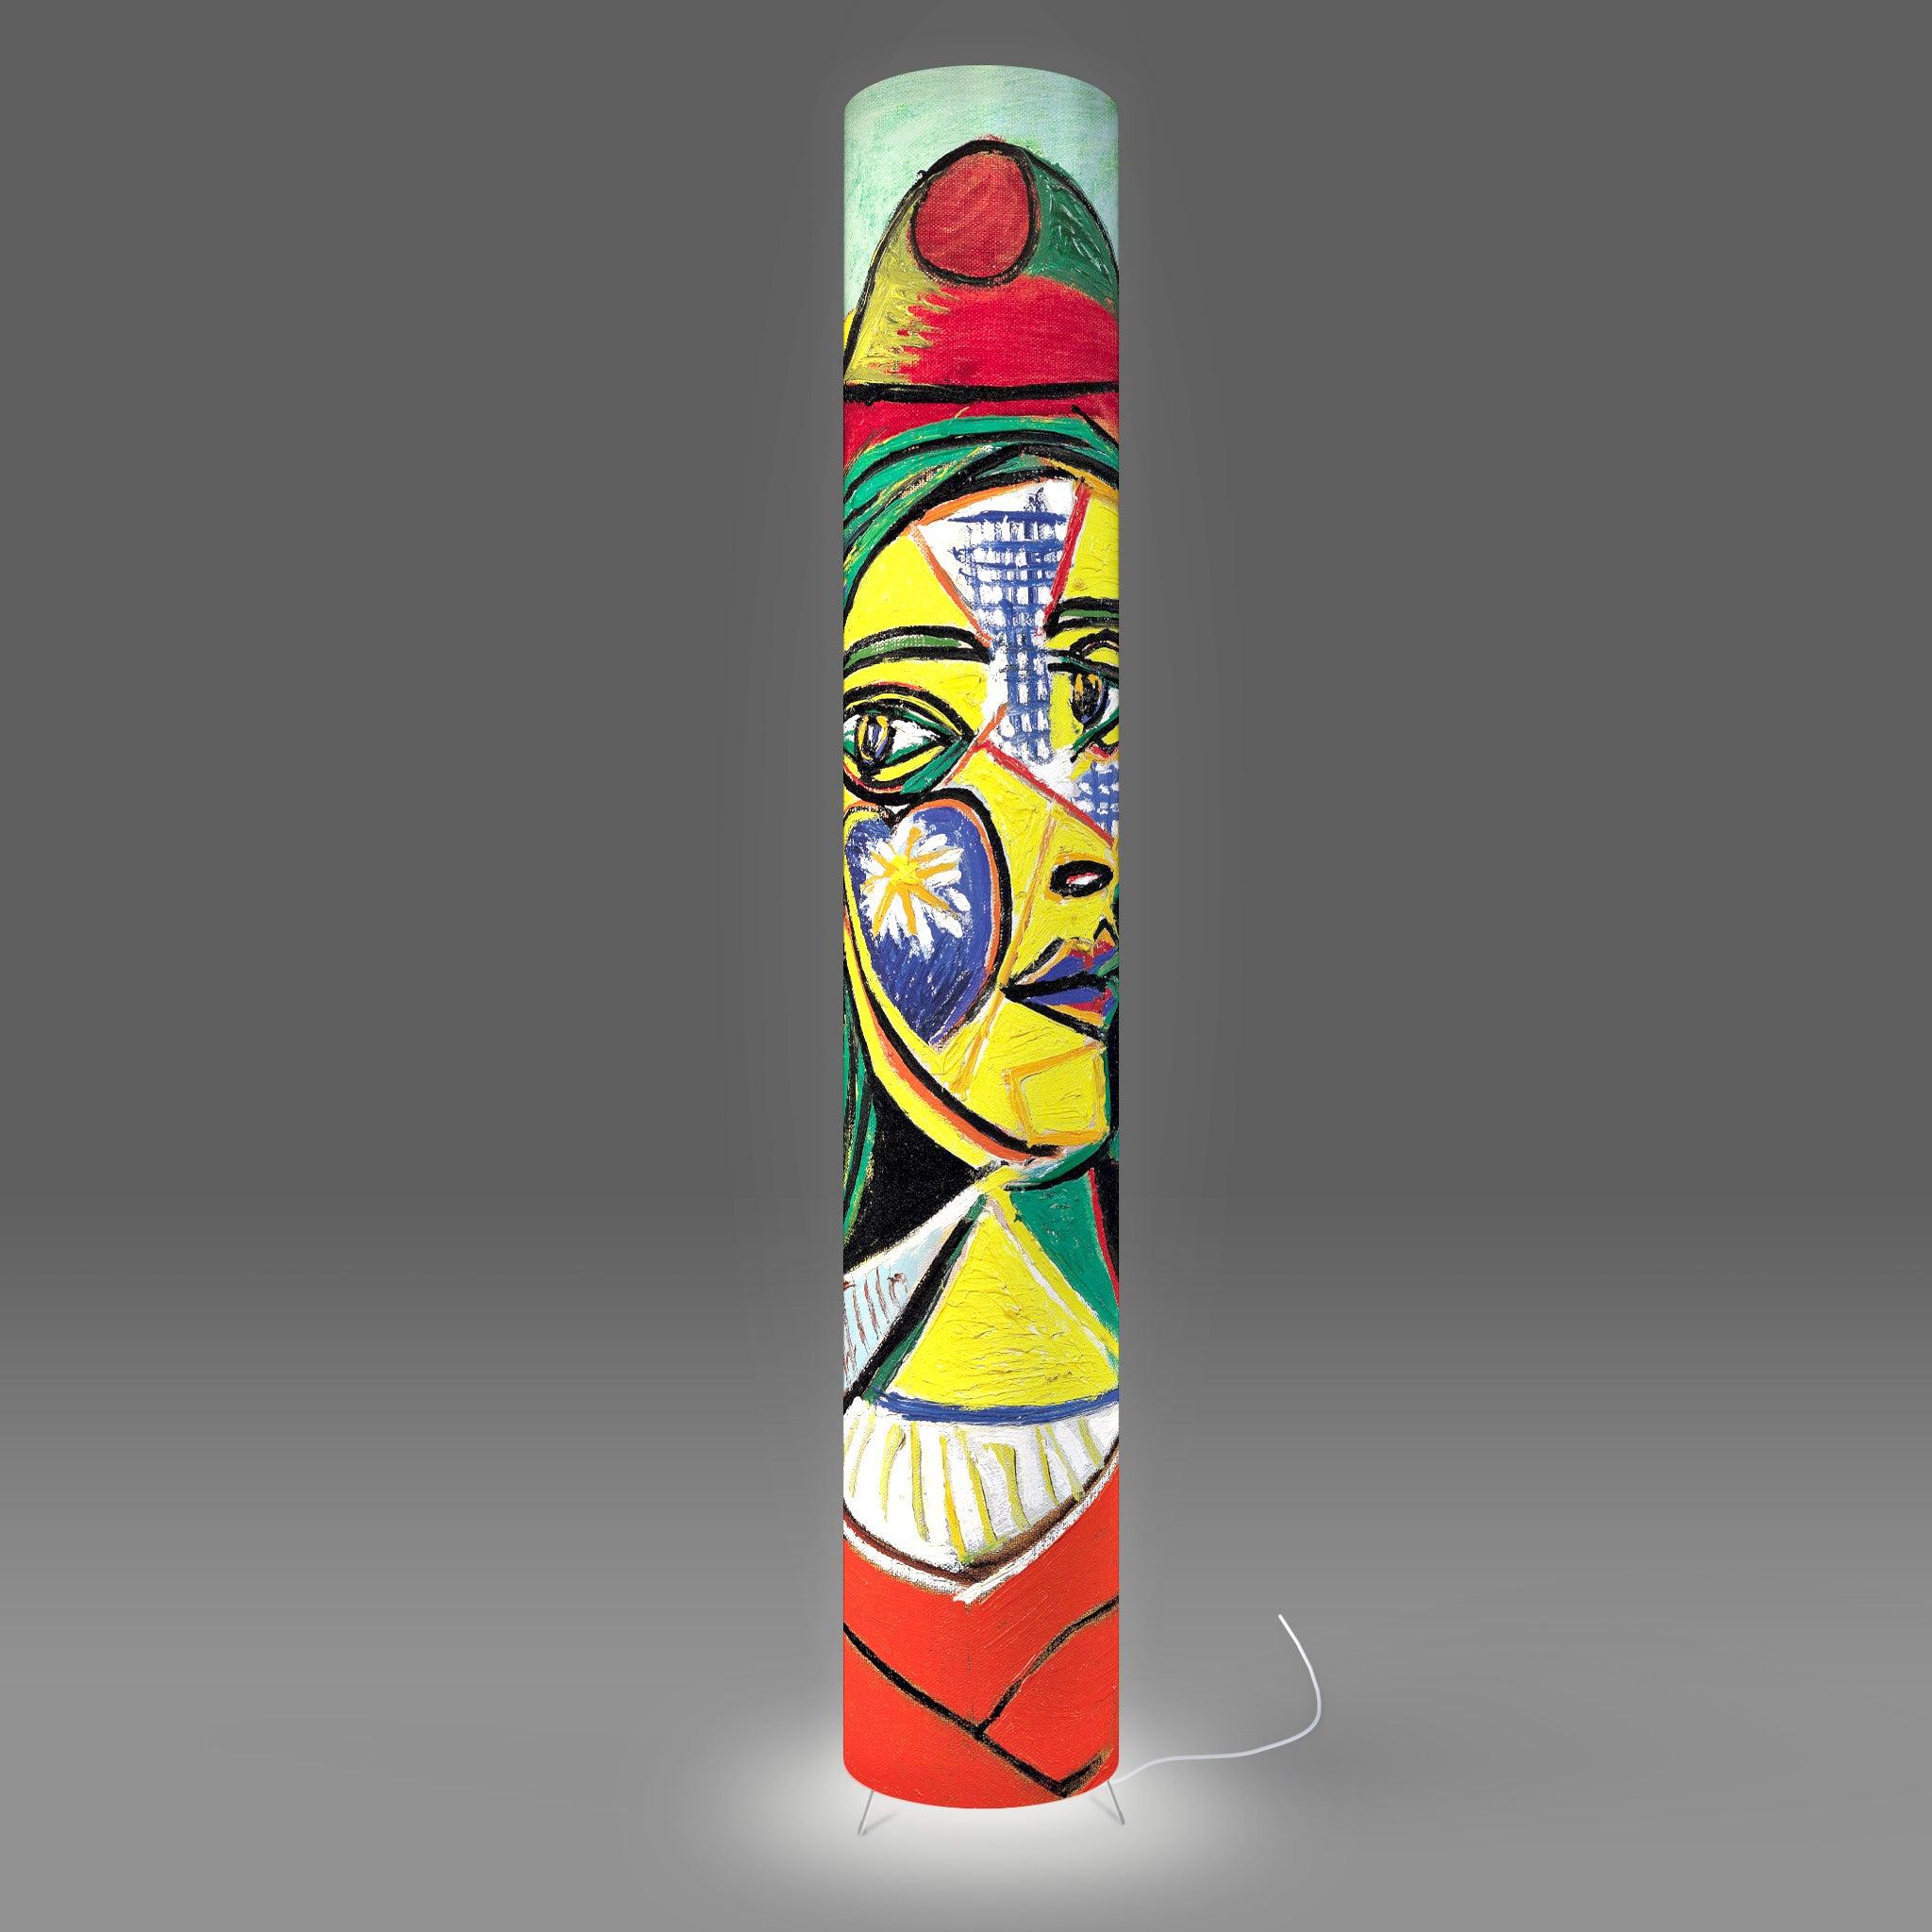 Fotbee floor lamp with art by Pablo Picasso